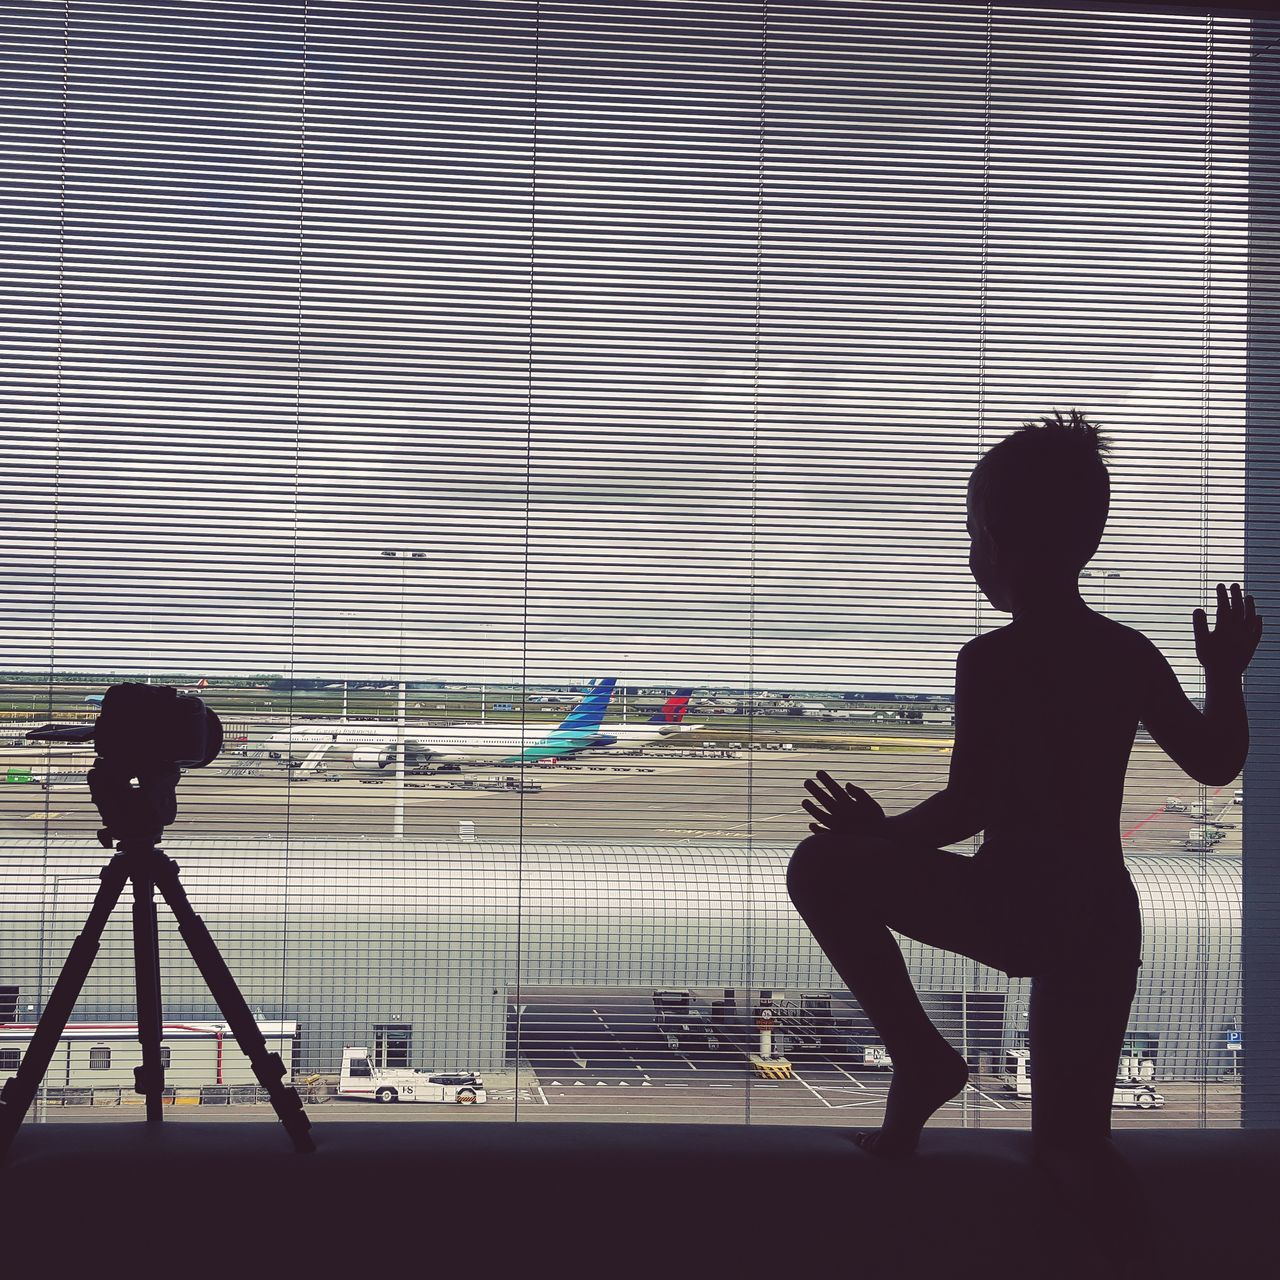 Silhouette One Person People Standing Indoors  Boy Aeroport Siluet Trip Tripers